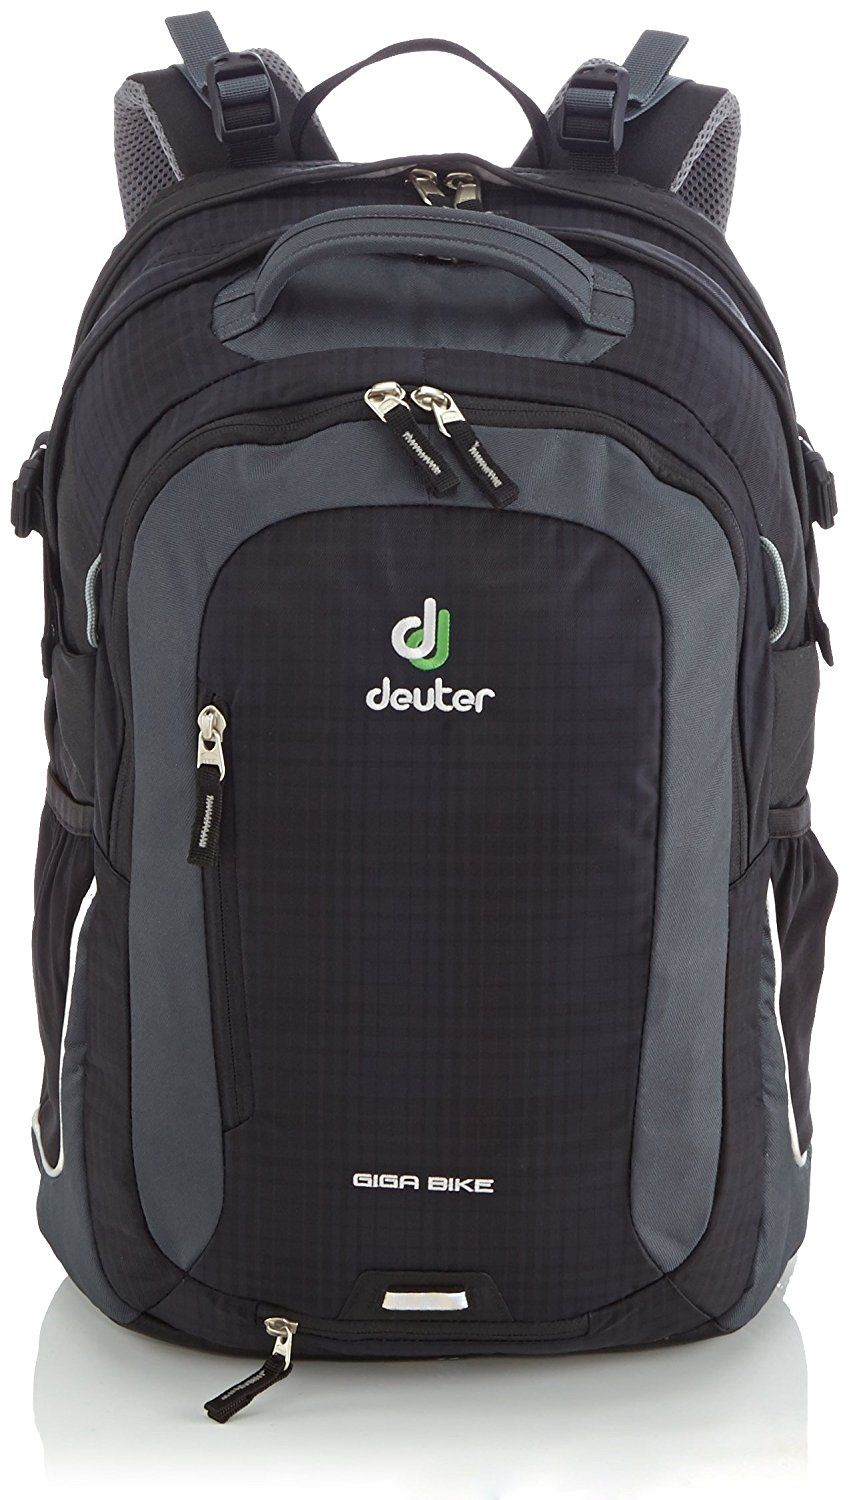 Deuter Item Giga YouSee A Pack 28 Bike For Special Just Outdoor SzpVUM